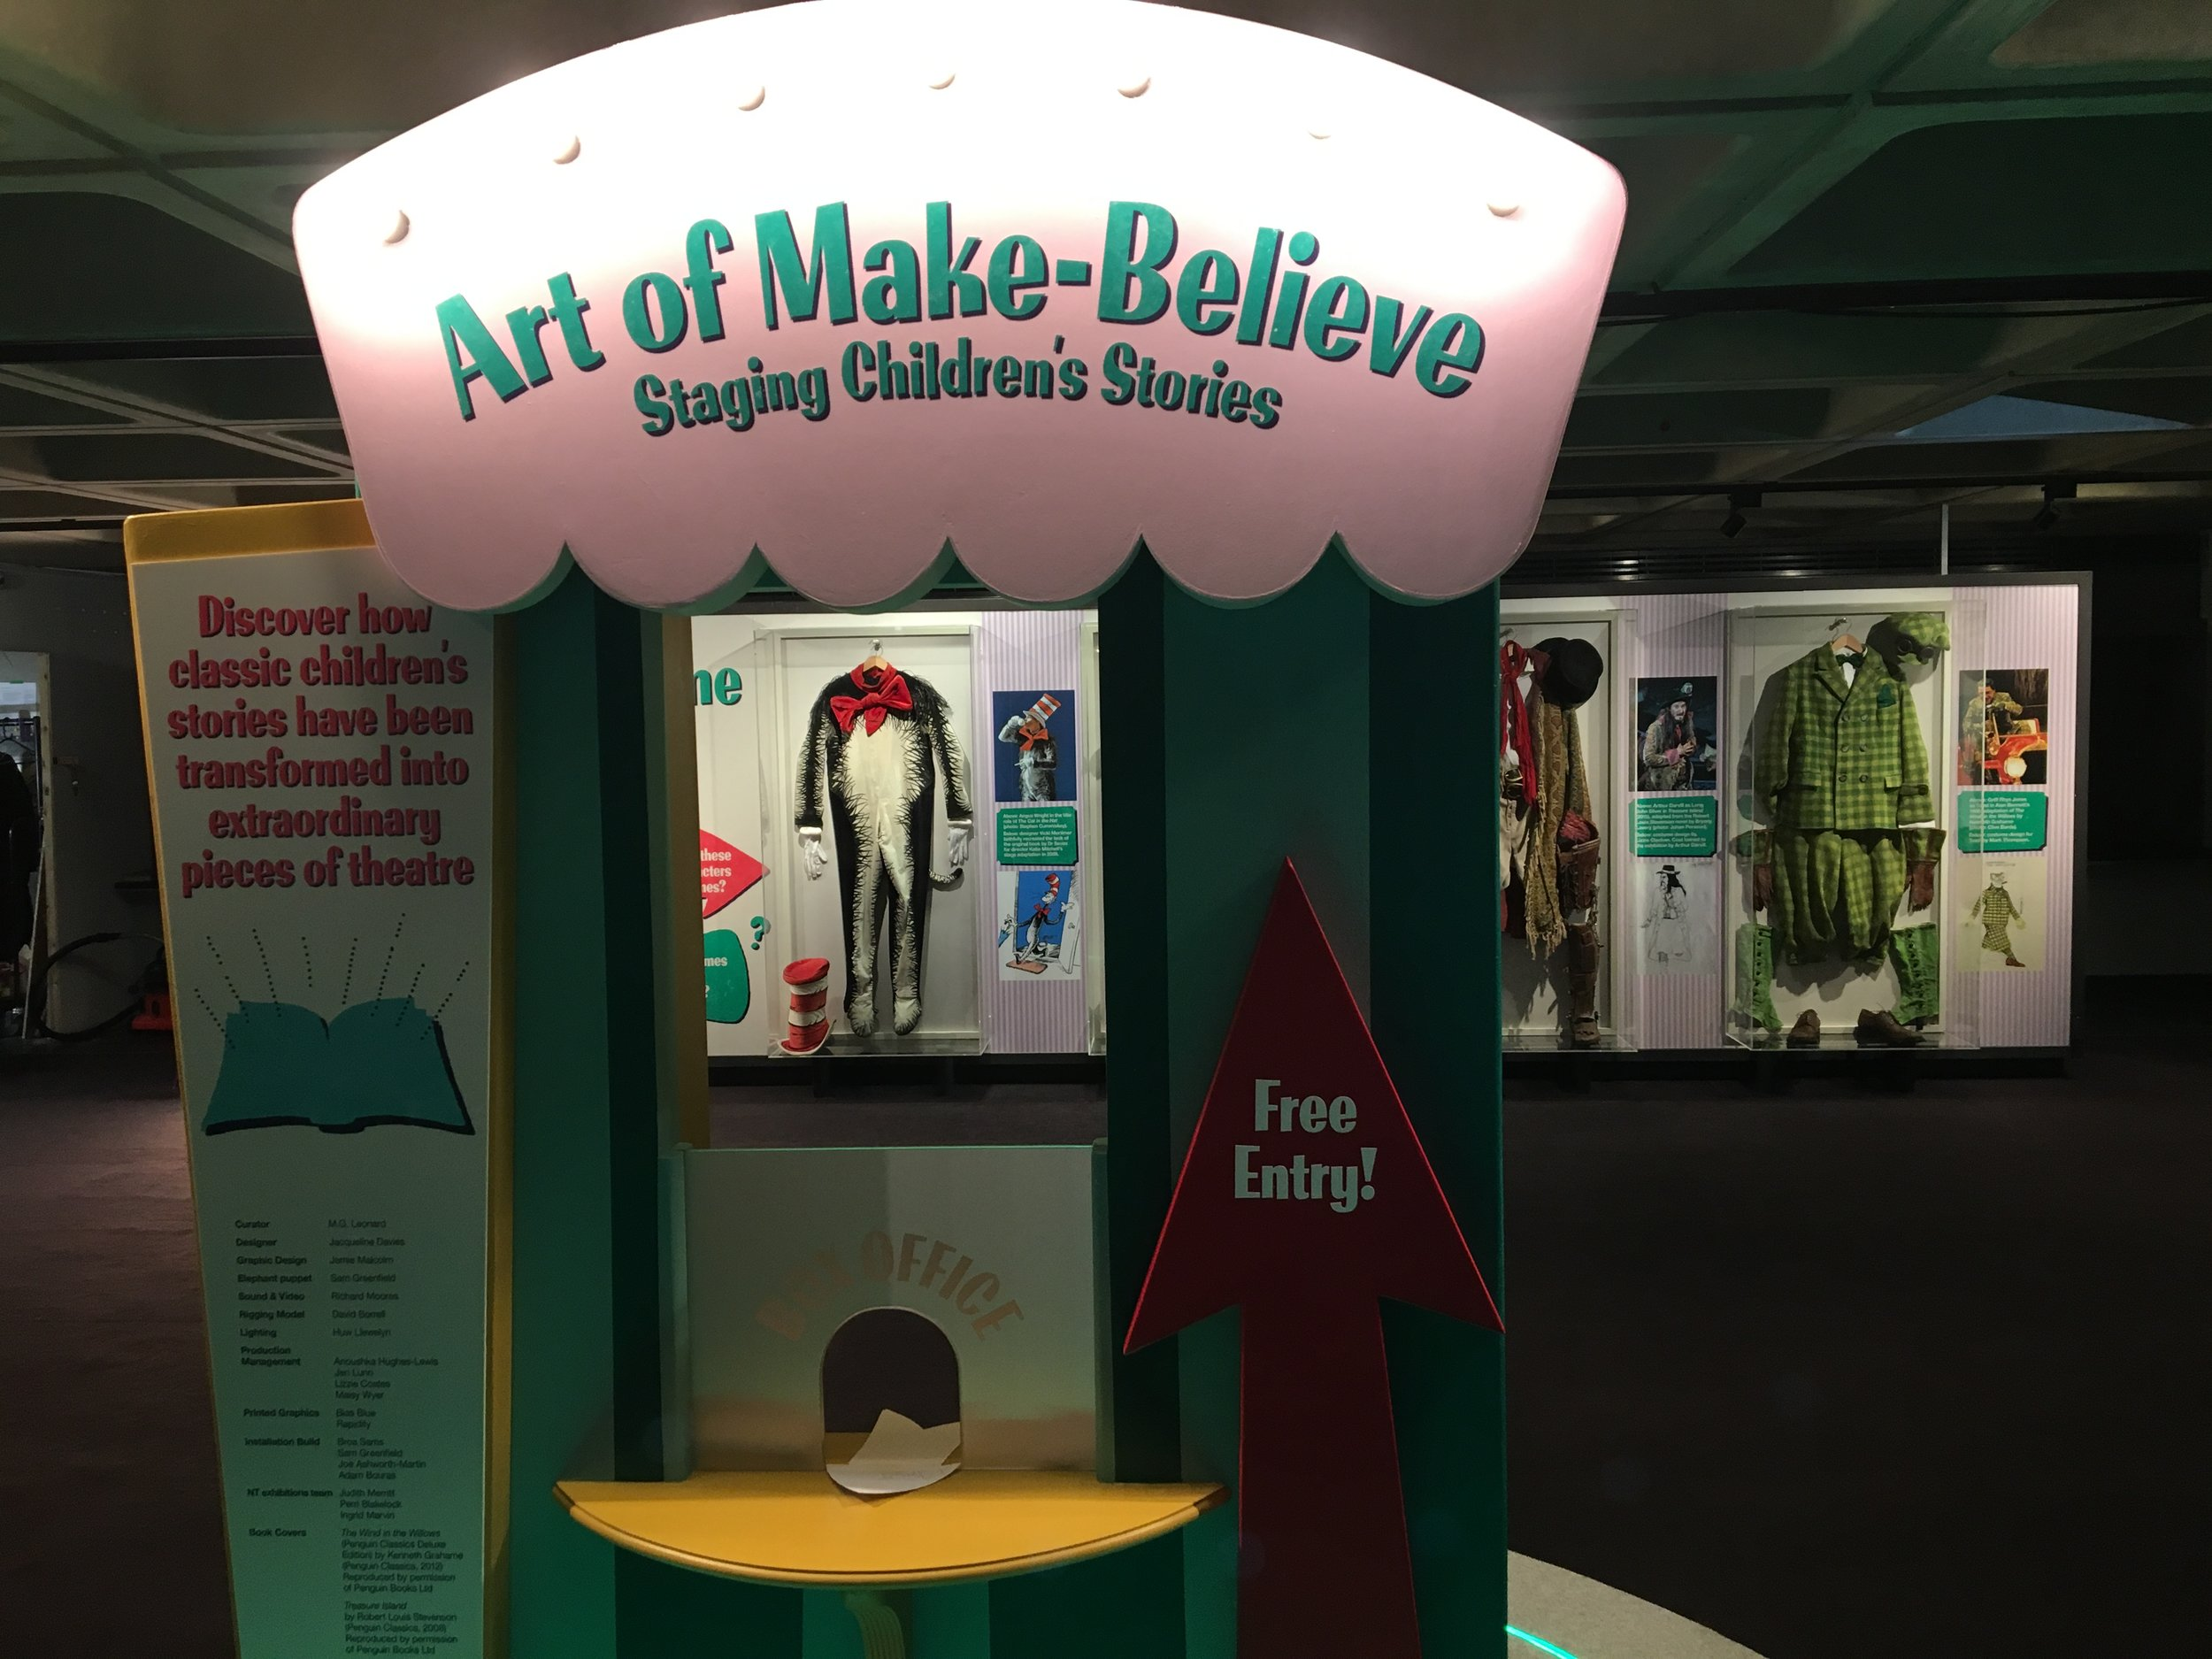 The entrance to the Art of Make Believe exhibition at the National Theatre